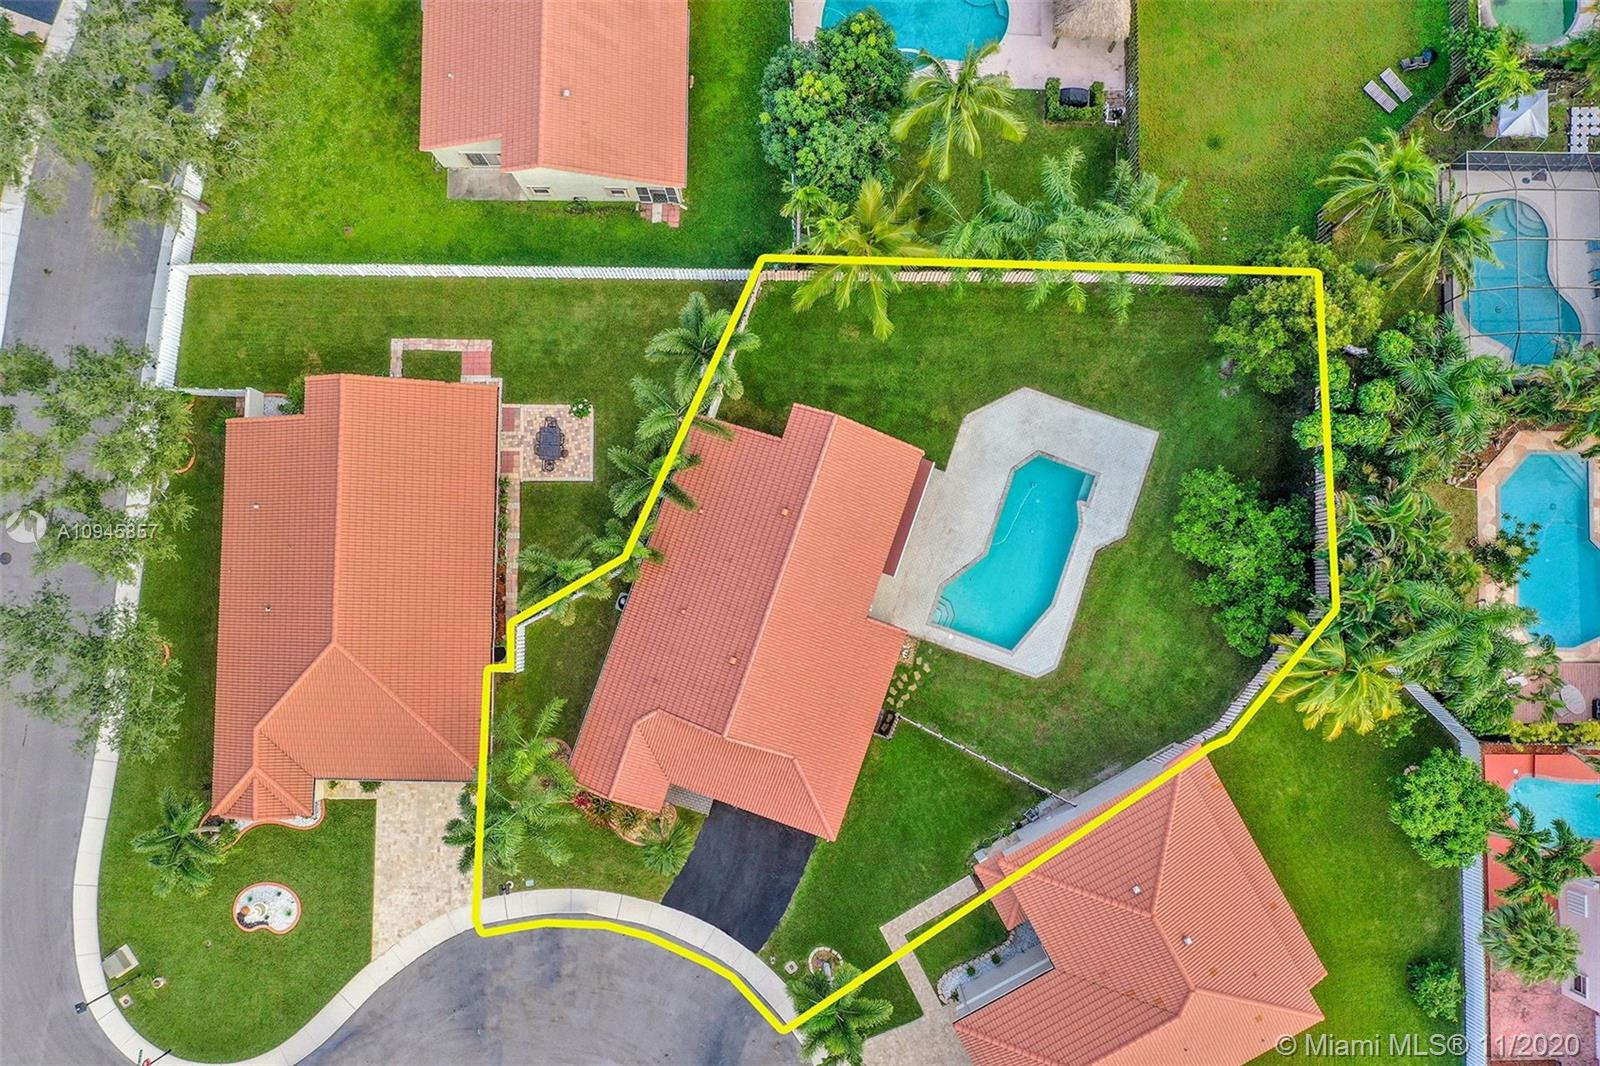 One of the largest lots in the area! You'll love coming home to this 3/2 w/vaulted ceilings, outside you can enjoy an immense fenced yard & paver patio w/awning & pool to relax. New A/C 1 yr ago! Located in Residences of Sawgrass just mins from Sawgrass Mills Mall & BBT, major highways, restaurants & shopping.  Open kitchen has black appliances, pantry and granite counters as well as island w/sink & power. You have a sunken tub to soak away your cares in the master suite. The master bedroom is large enough for the biggest of bedroom sets. You'll enjoy making memories in the spacious & bright living room with view of pool & yard. A separate laundry room features w&d. 2 car garage has plenty of room for your cars & toys with addt'l attic space for storage. Call now to see your future home!